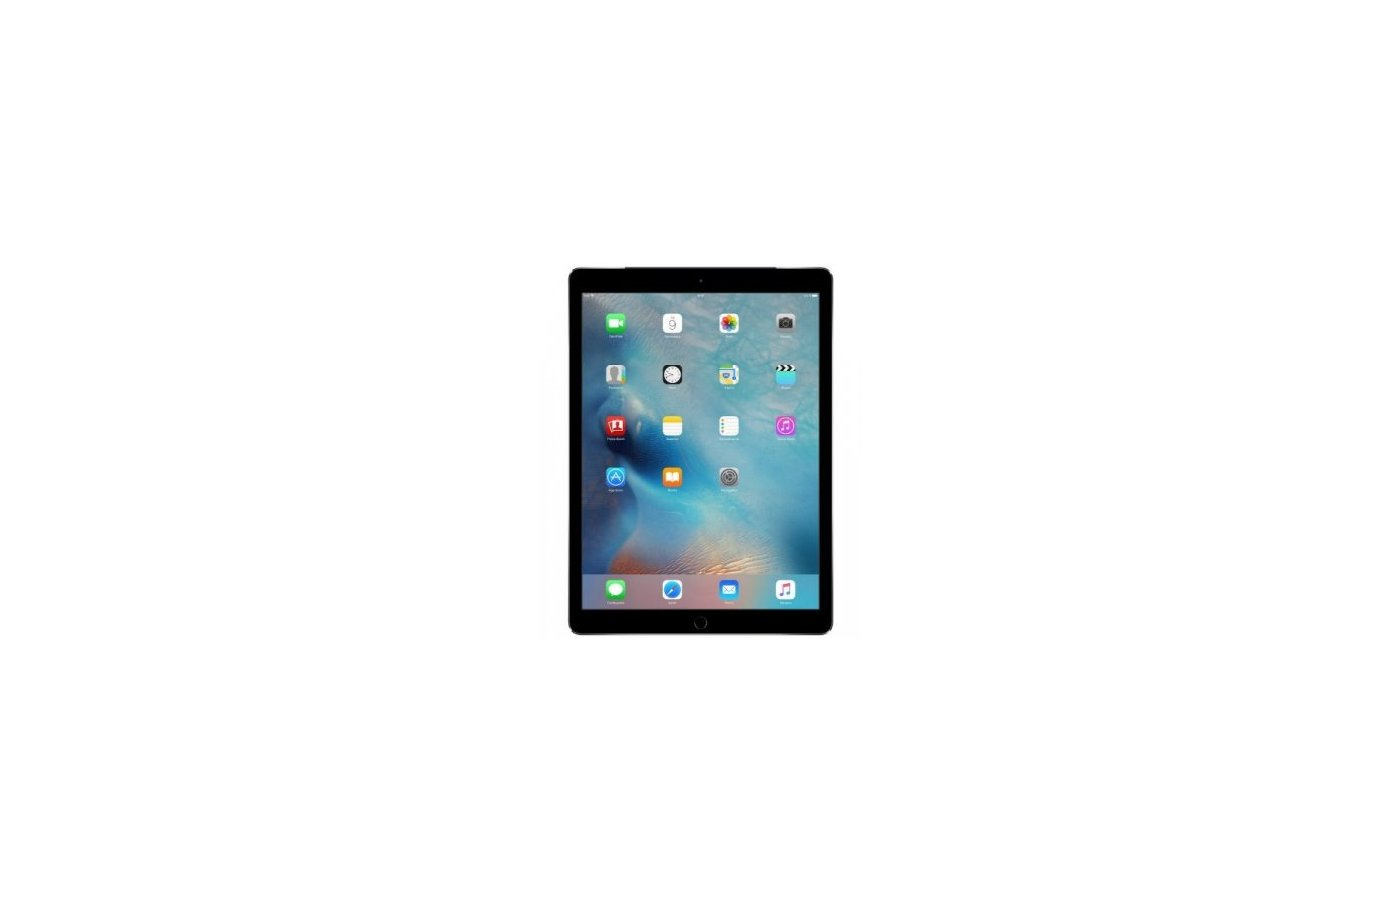 Планшет Apple iPad Pro 12.9 /ML0F2RU/A/